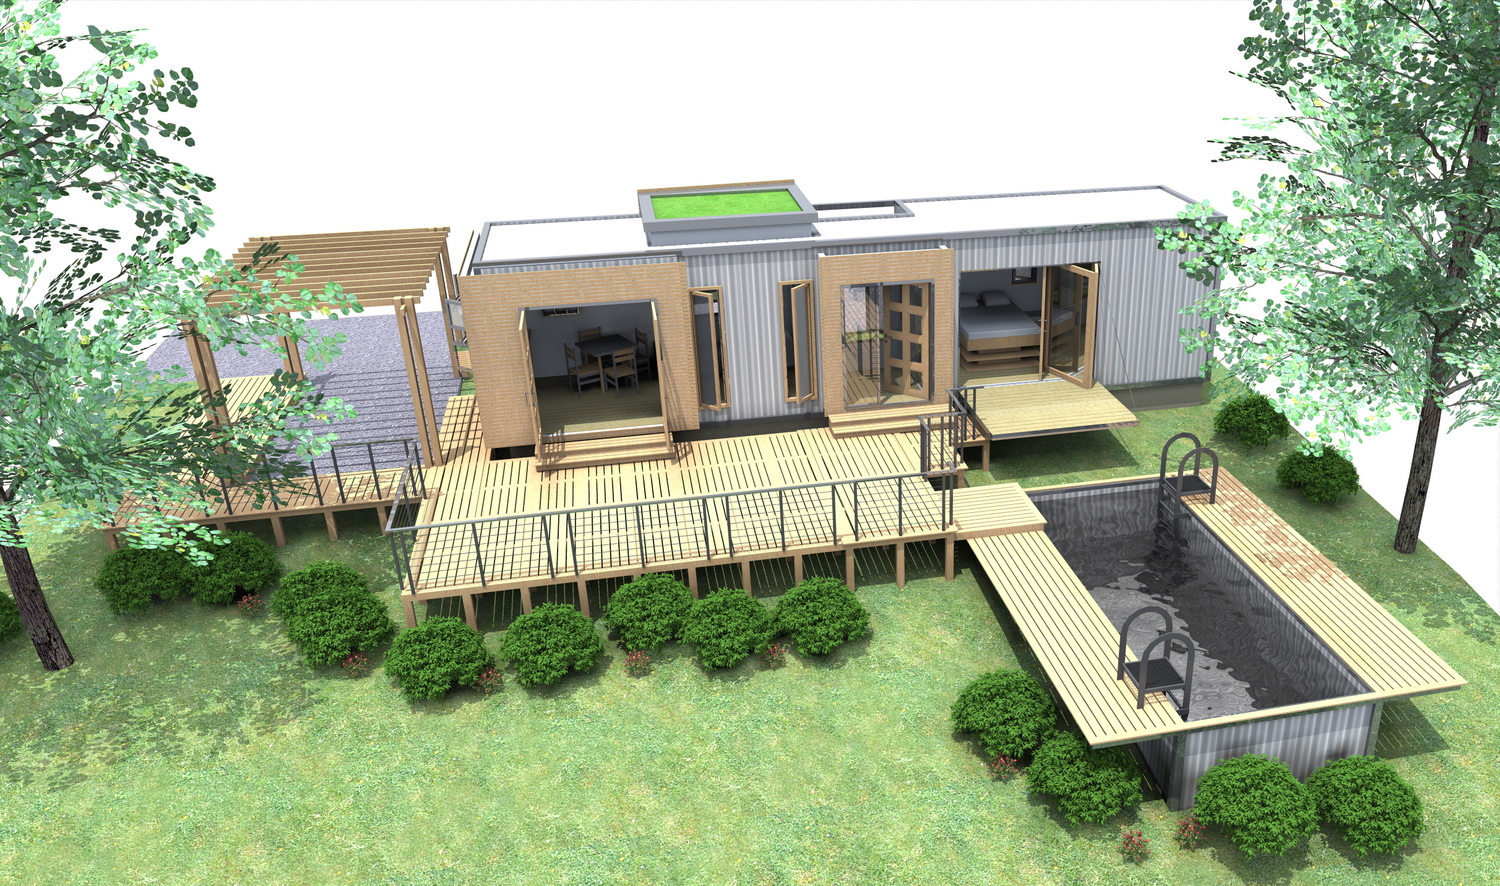 40ft Shipping Container Home,   Eco Pig Designs, SCH 1,   Devon, UK,